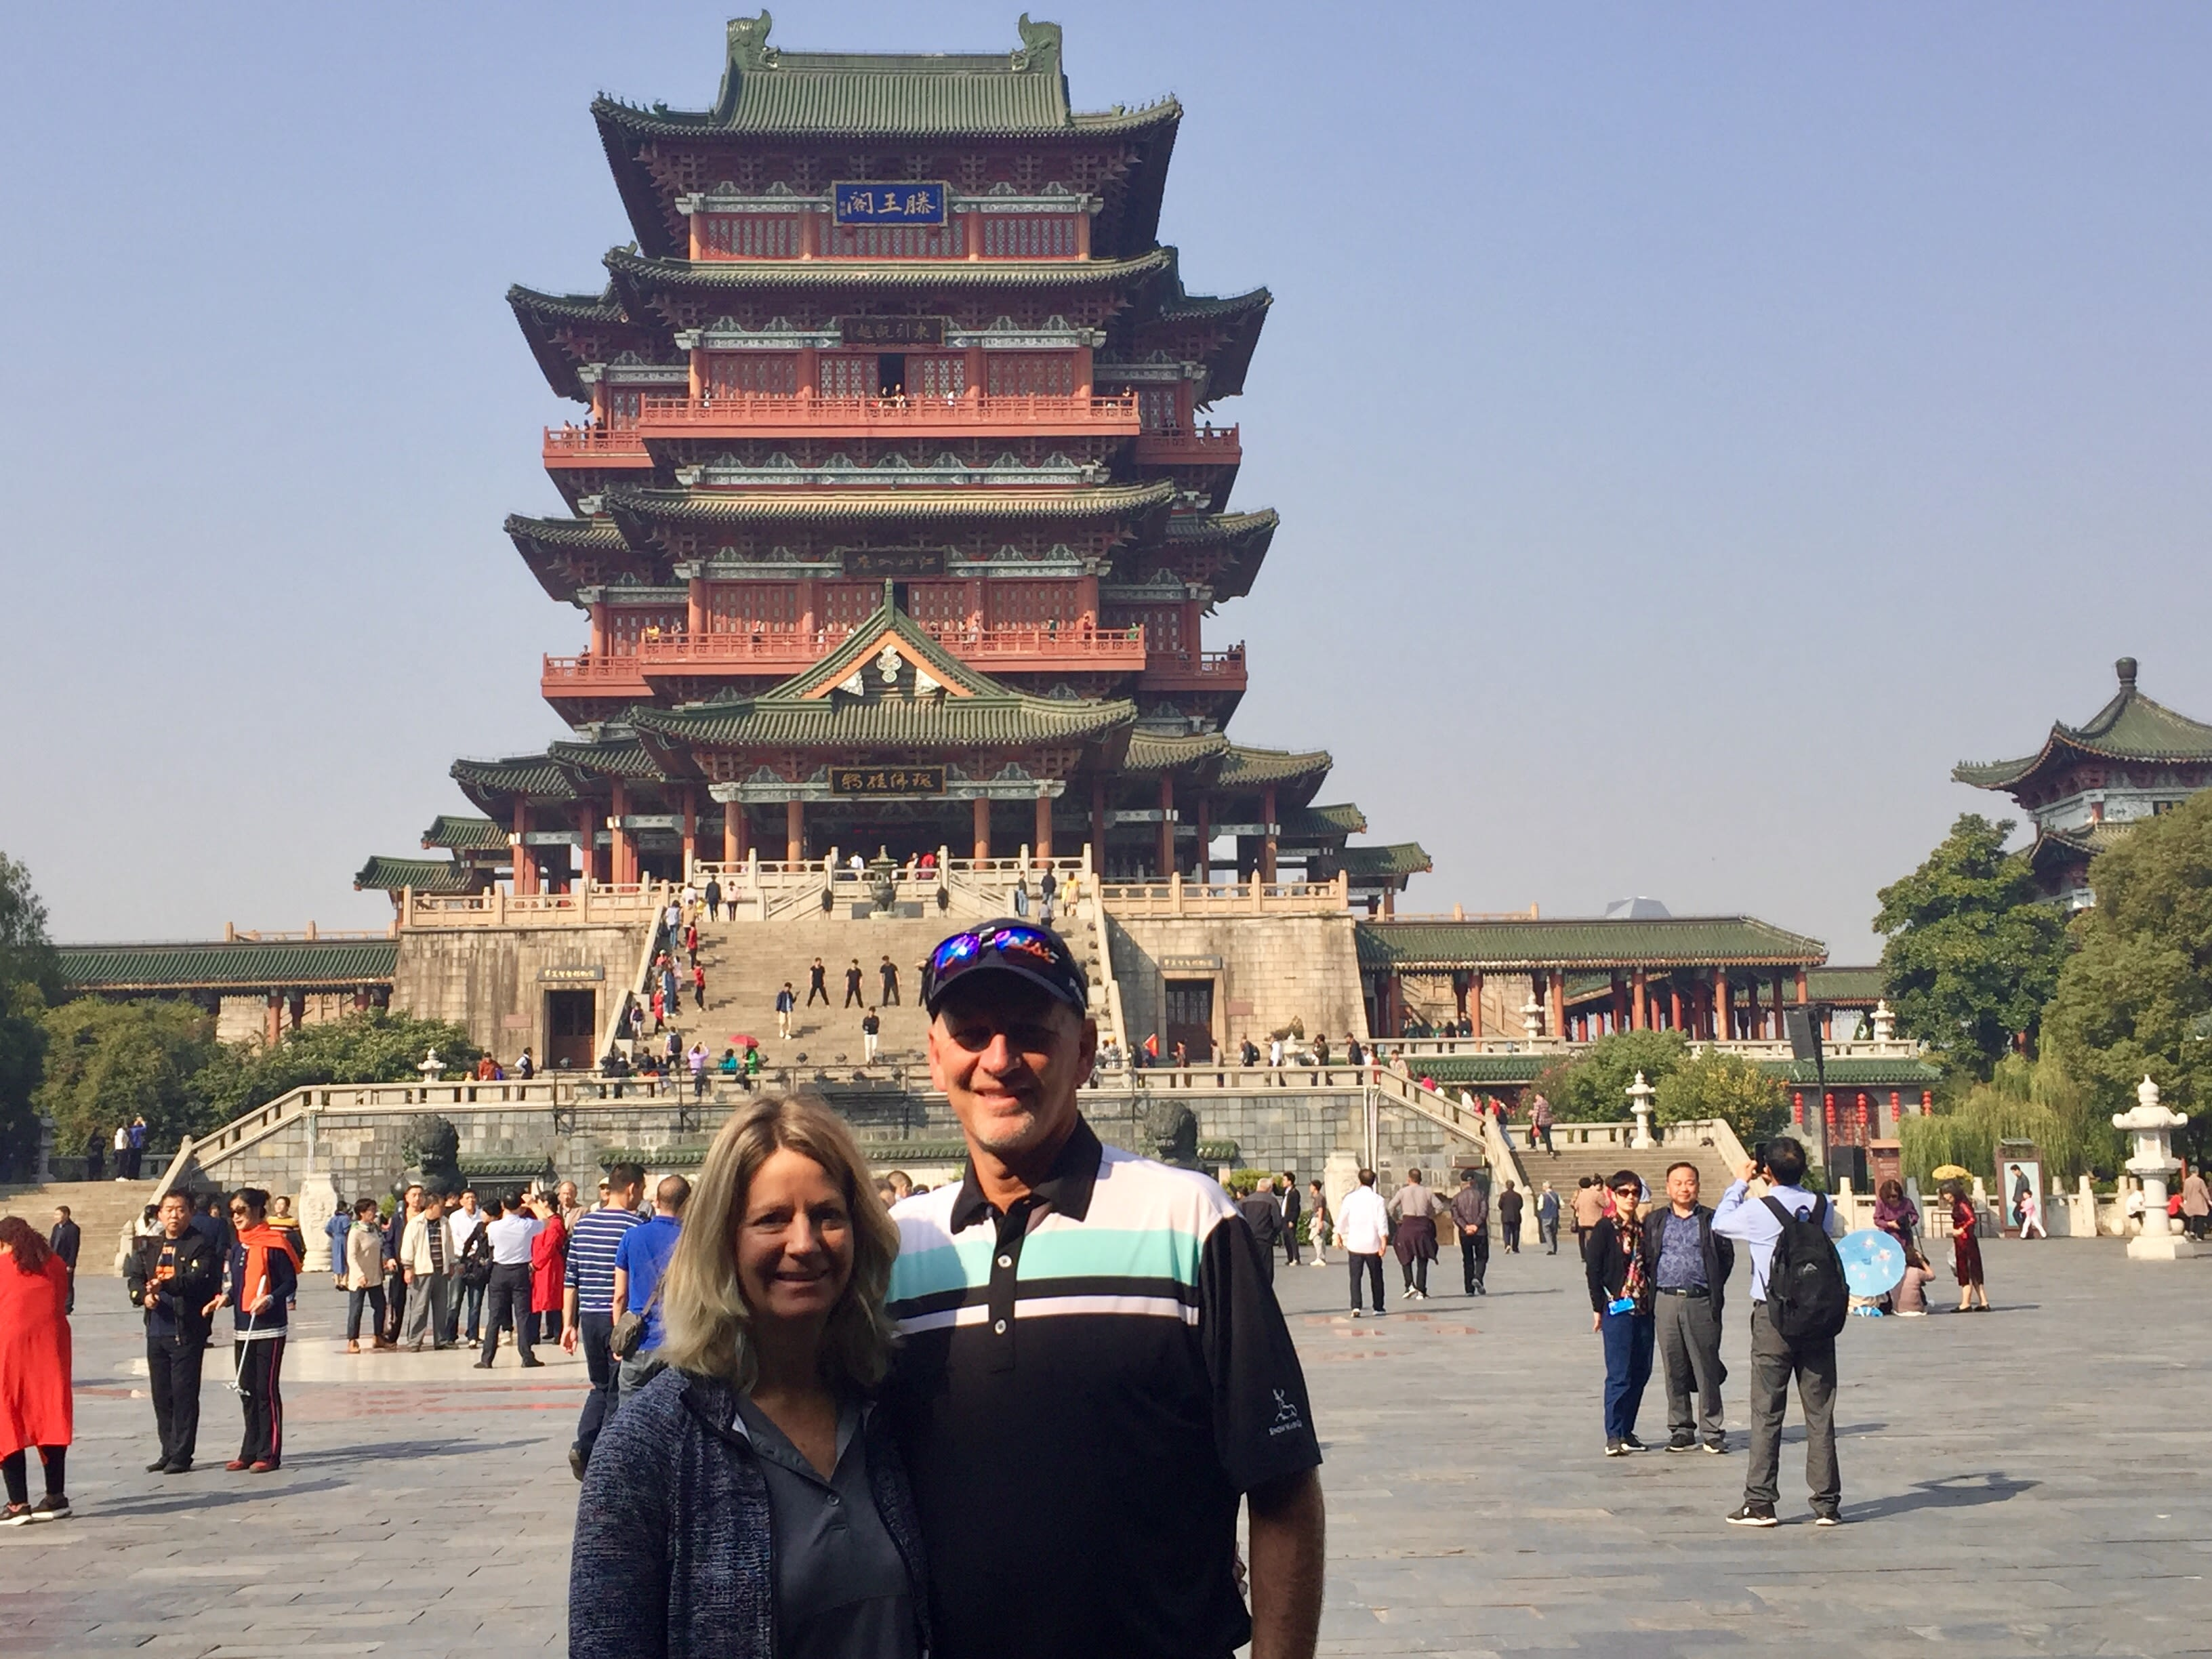 Doug and Karla Rohrbaugh pose for a photo at the Tengwang Pavilion in Nanchang, China on November 16, 2019.